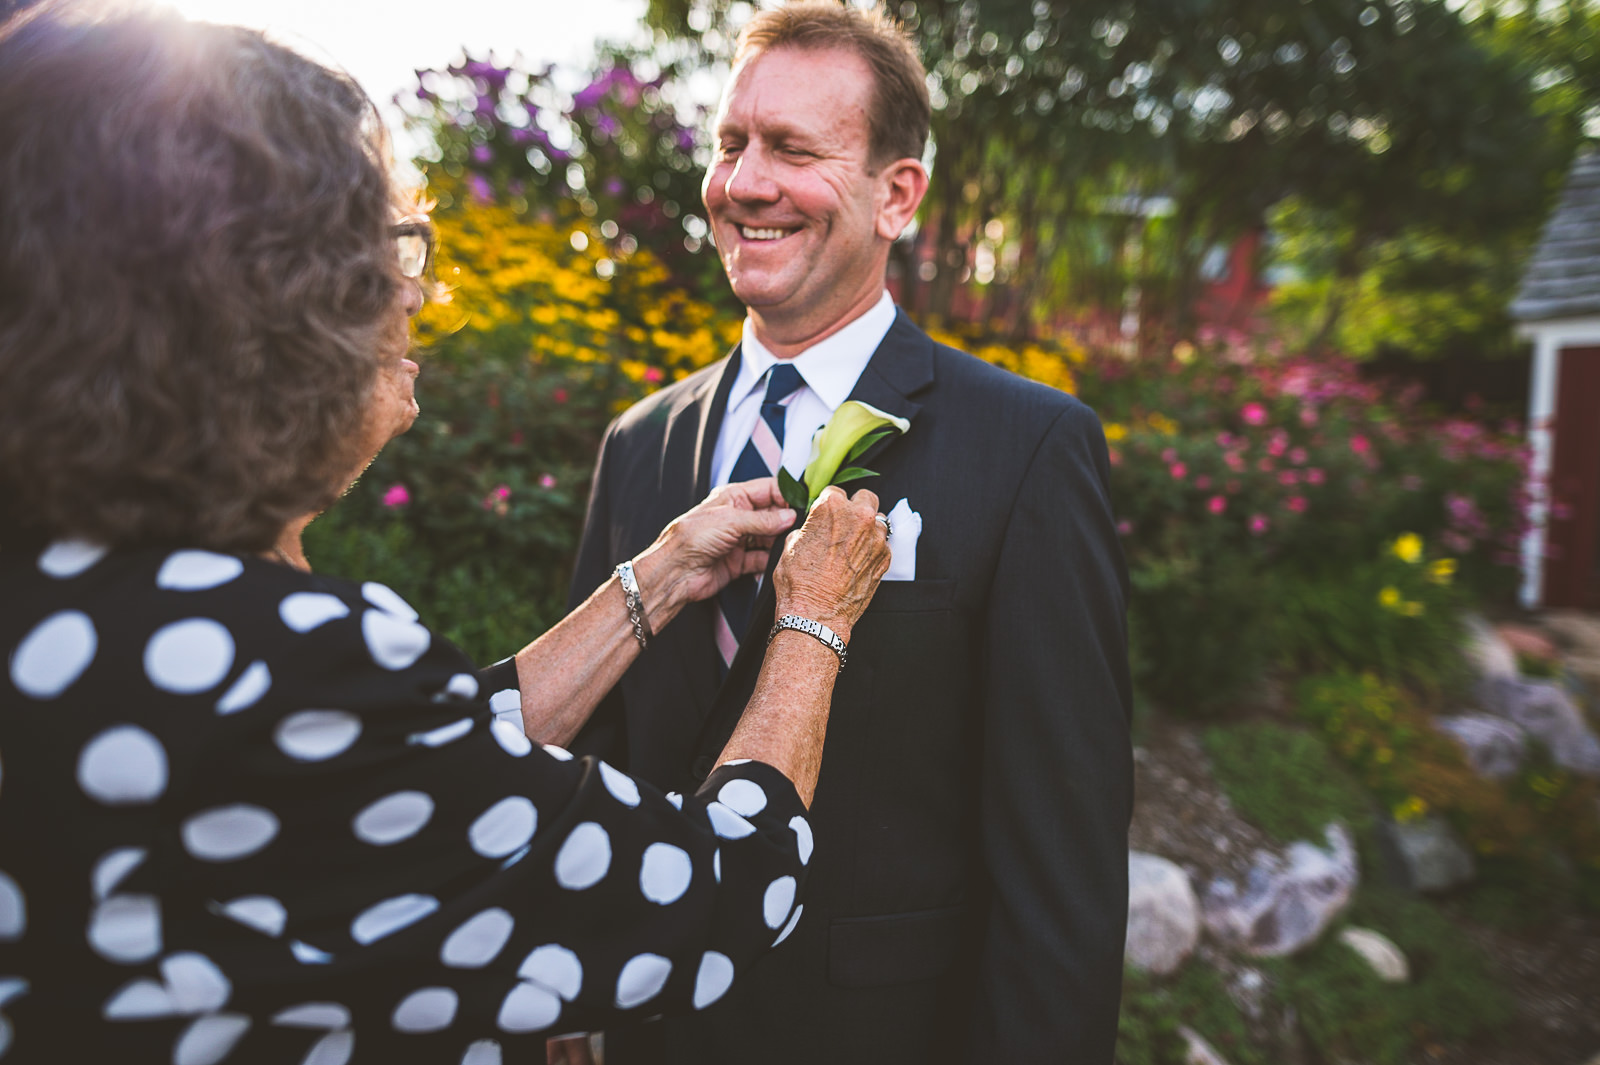 11 put on flower on groom - Karen + Scott // Fishermens Inn Wedding Photographer Elburn Illinois